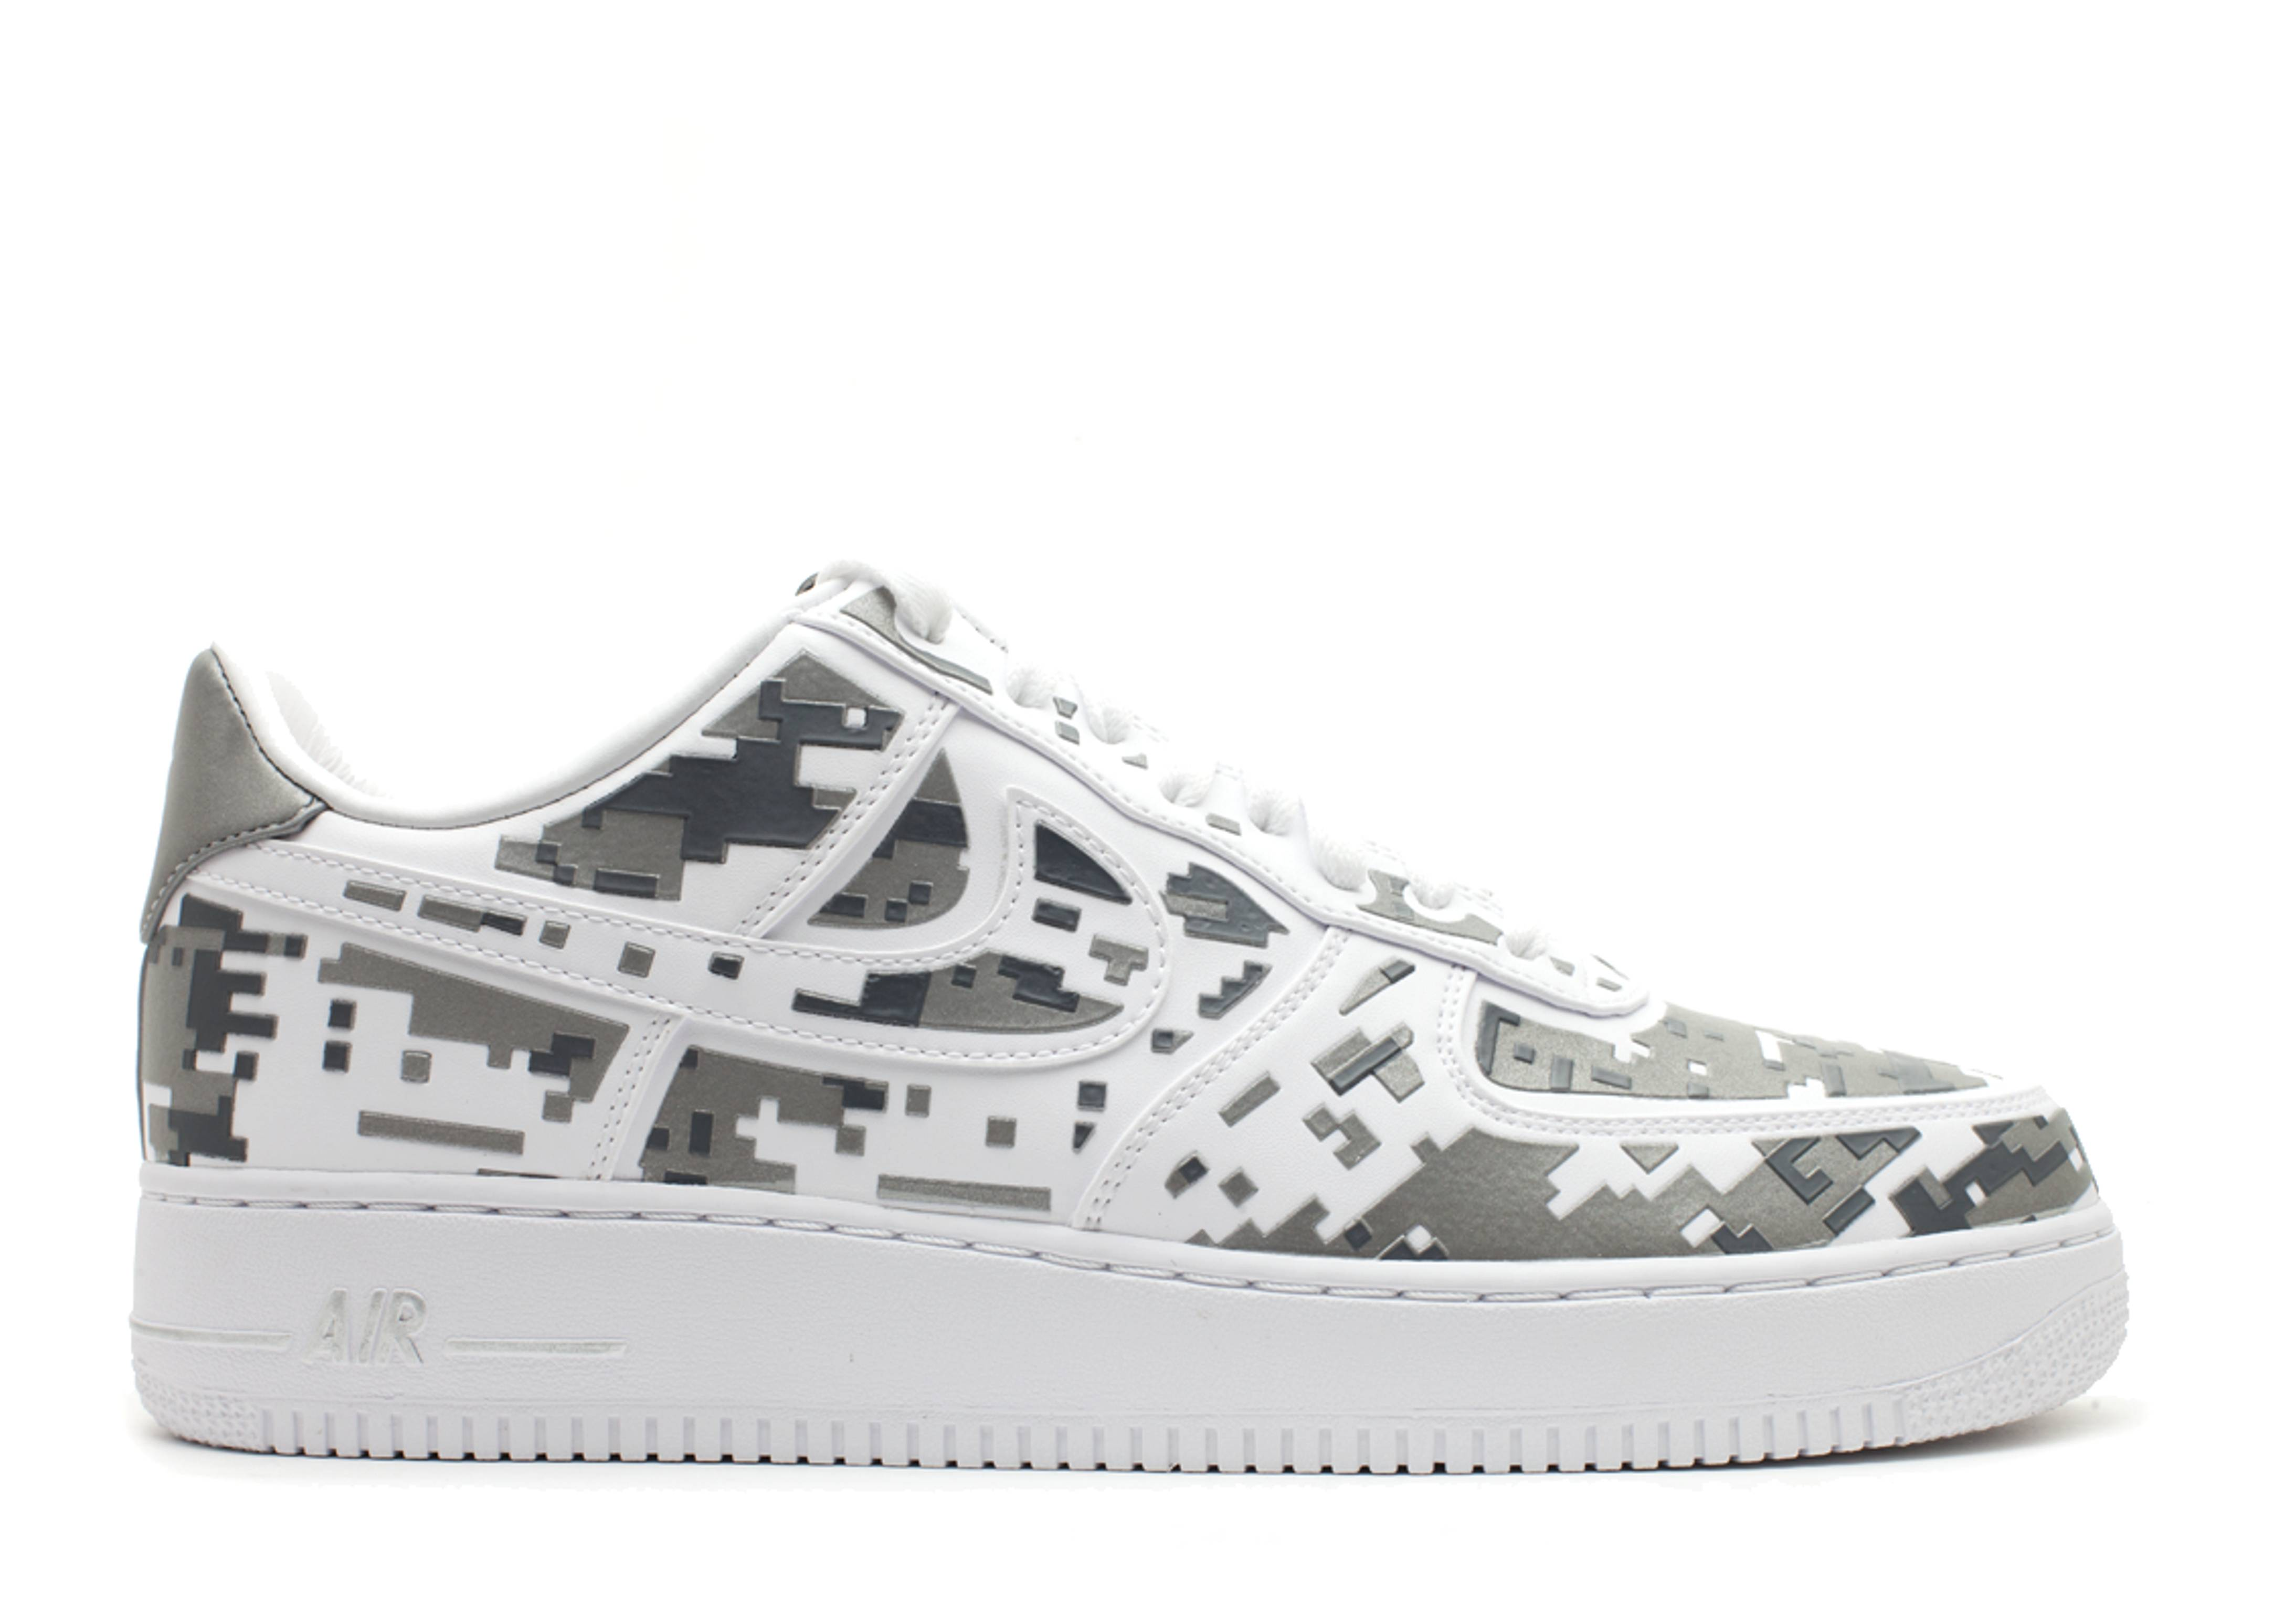 air force 1 low premium 08 qs